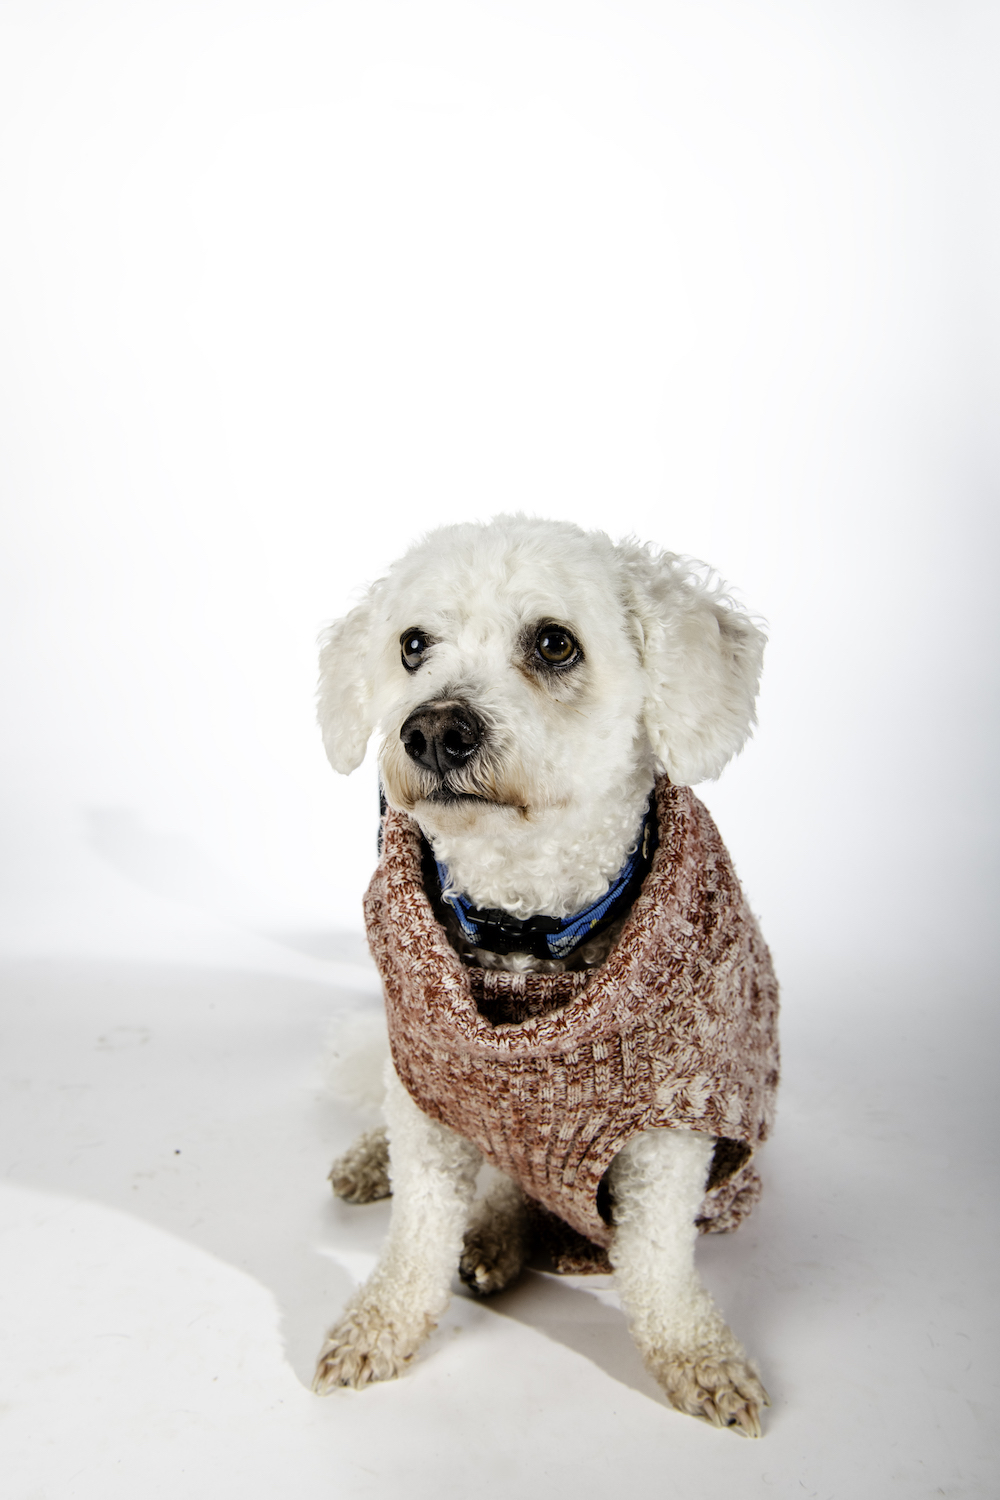 The little, white, curly-haired Bichon Frisee sits on a white backdrop wearing a marled red sweater